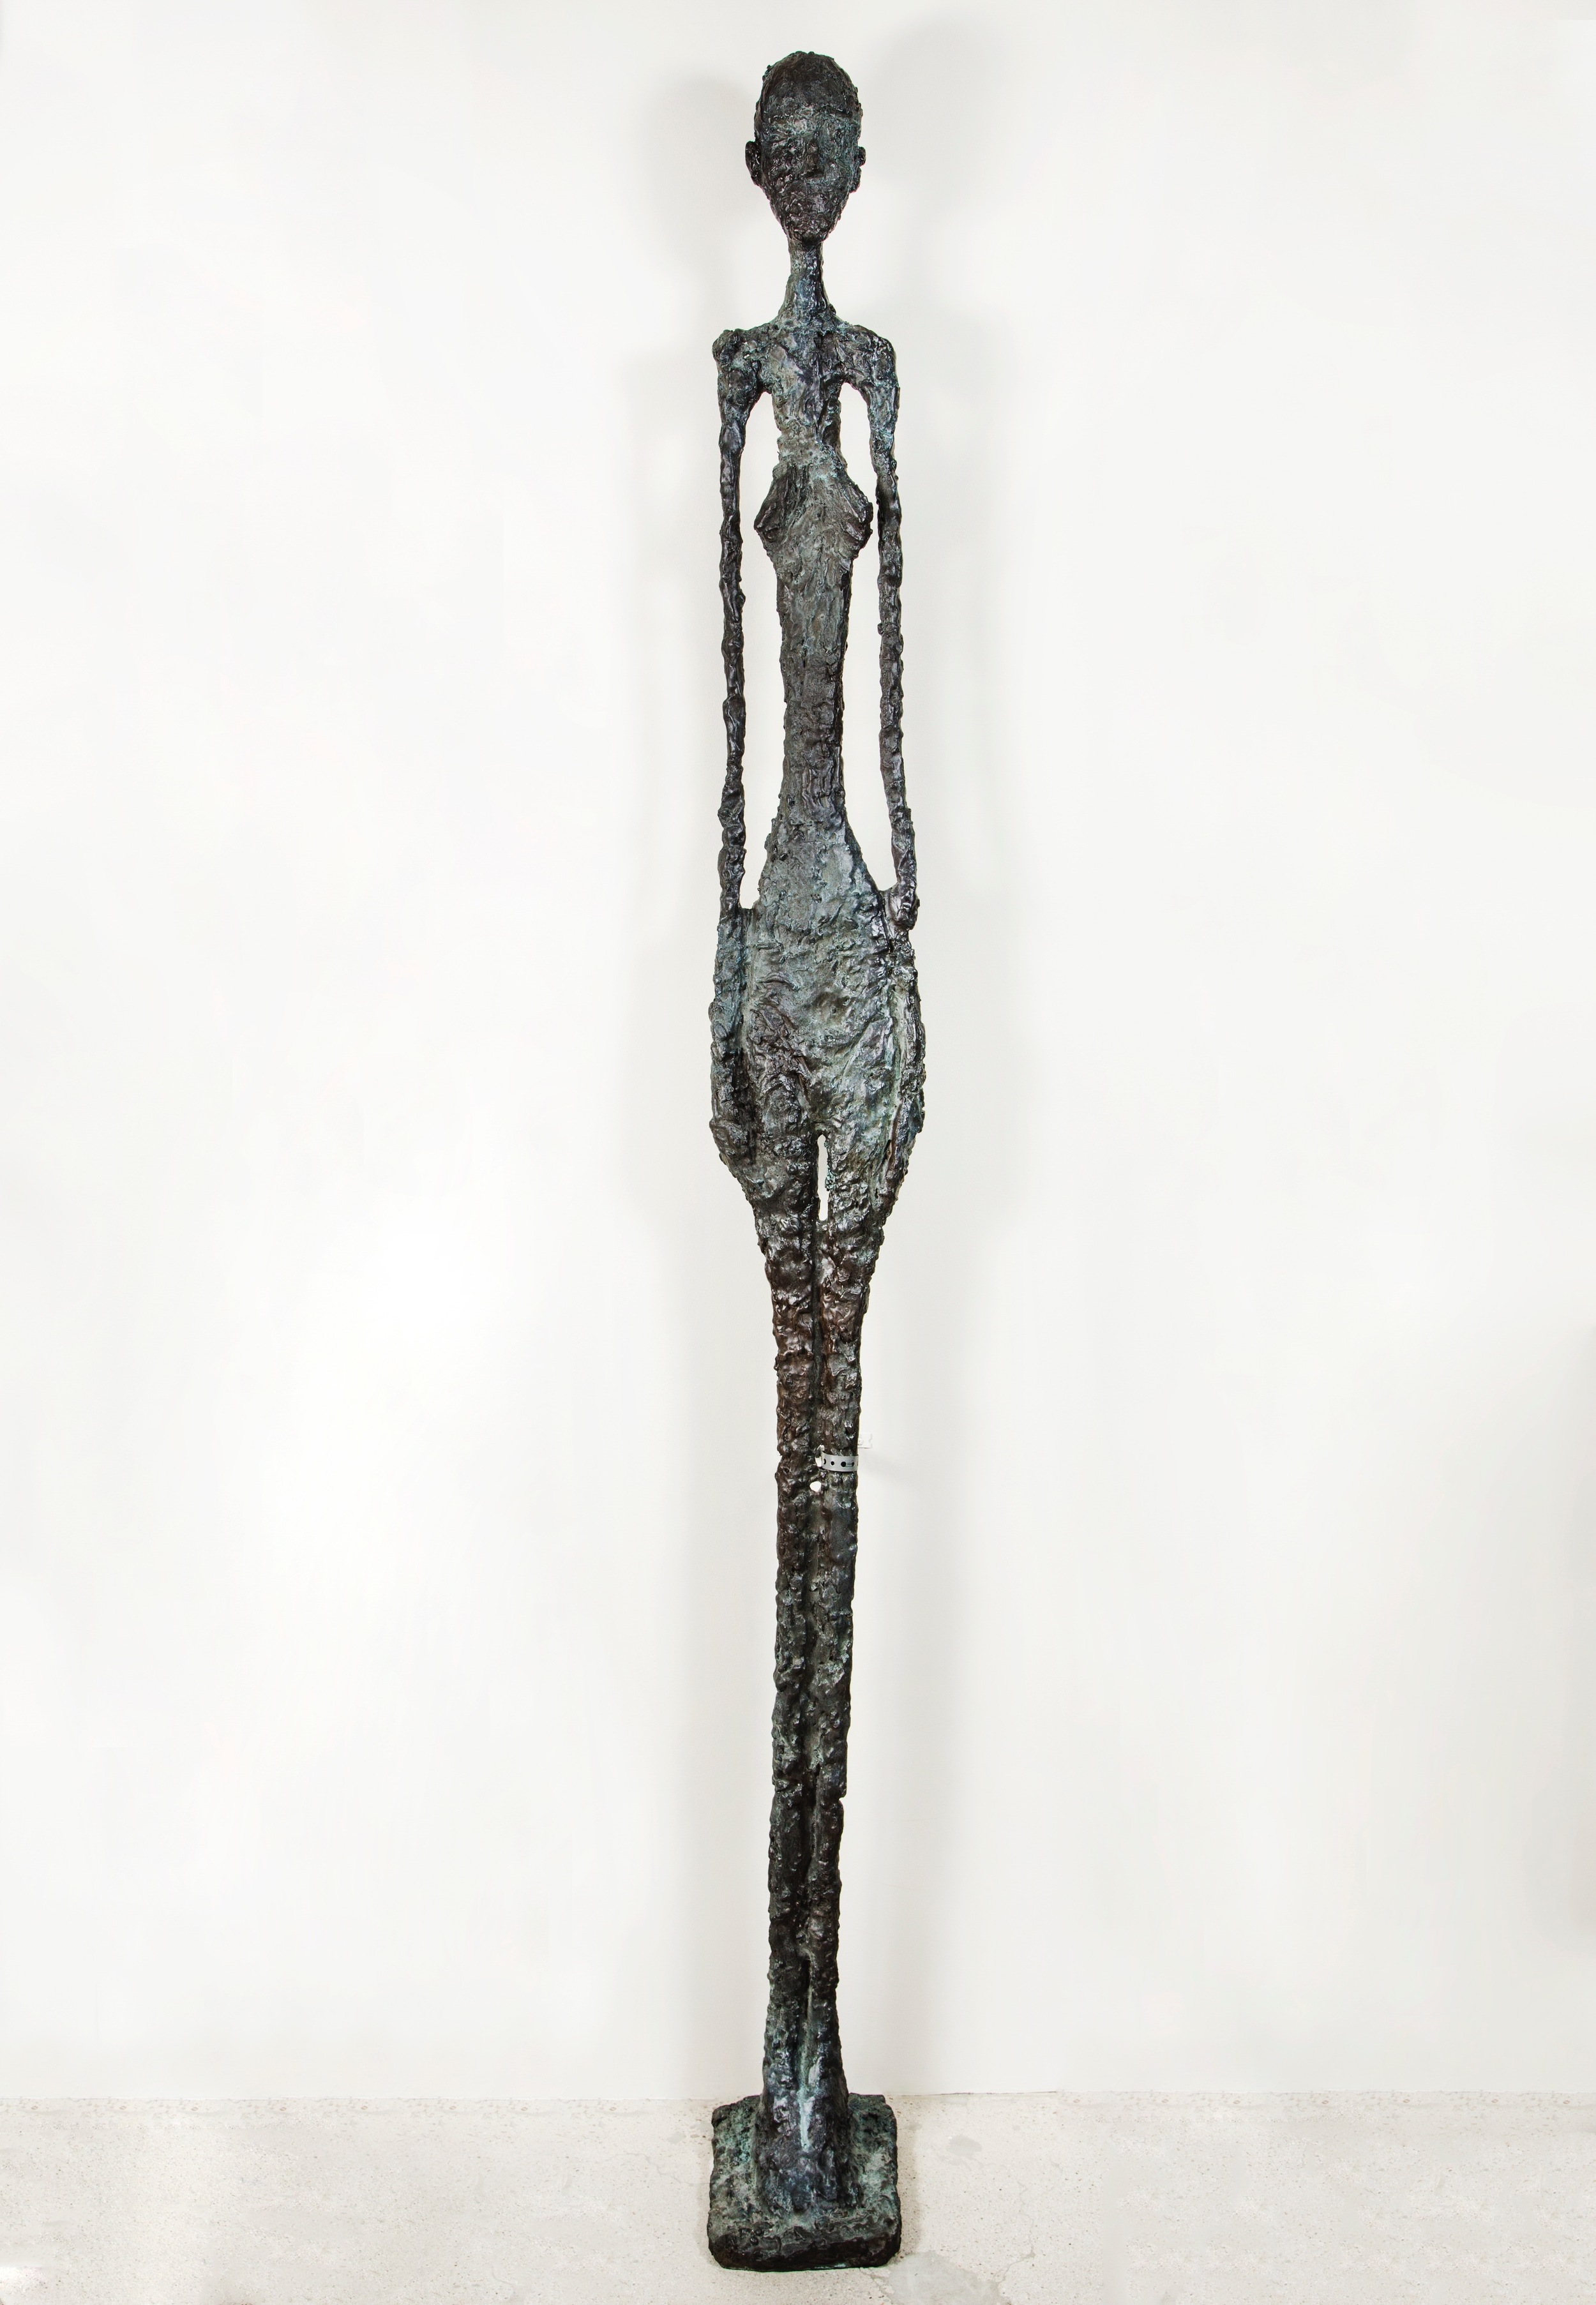 """NORTIA"" sculpted by Elizabeth Ortiz  created for the ""HOMAGE À GIACOMETTI SERIES""."